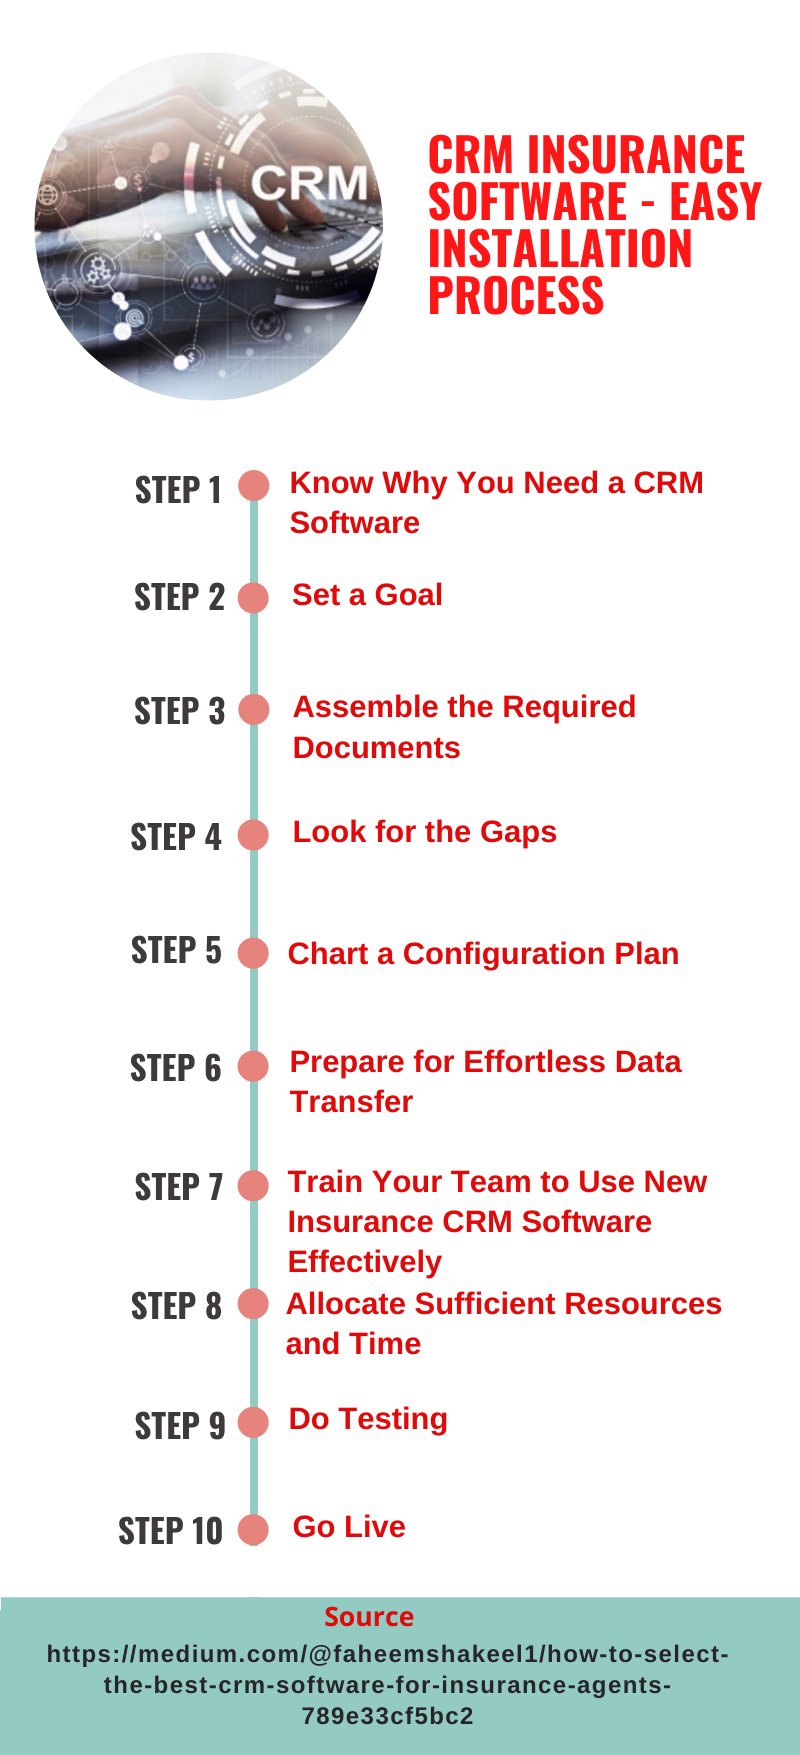 10 Steps for Hassle-Free Insurance CRM Software Installation | Salesforce